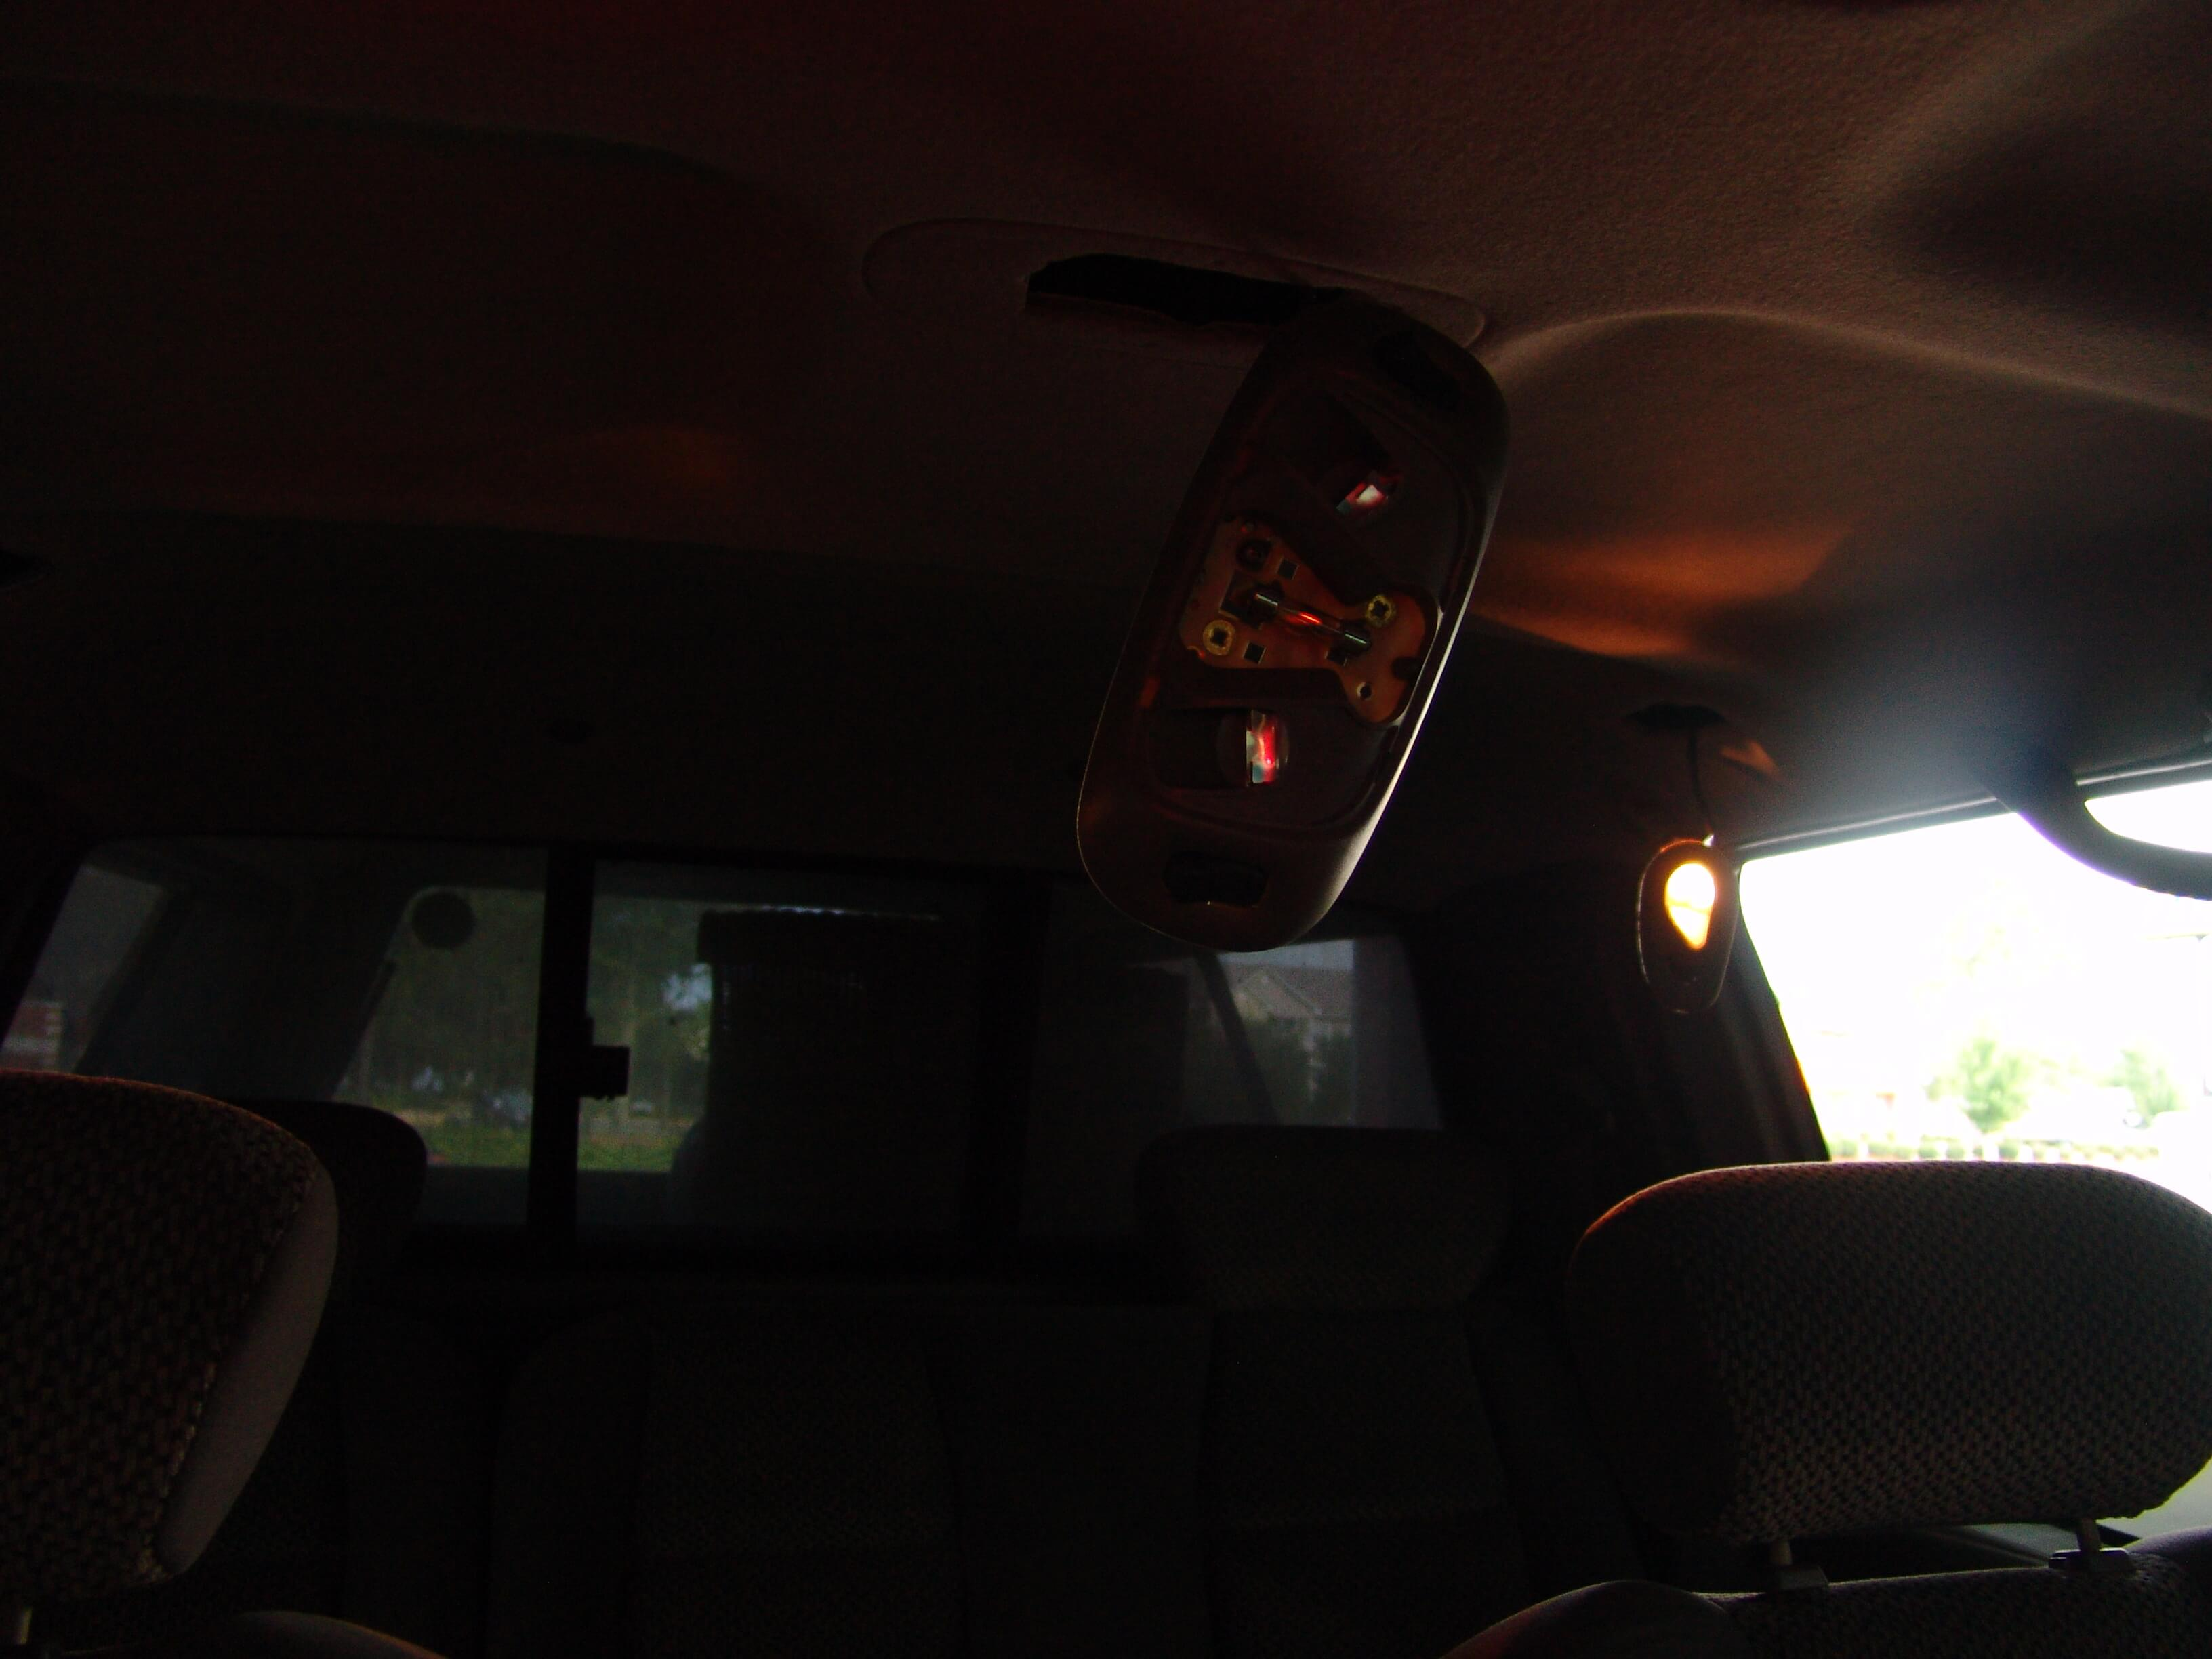 2002 Ford F150-Dome Light Glows & Sparkyu0027s Answers - 2002 Ford F150-Dome Light Glows